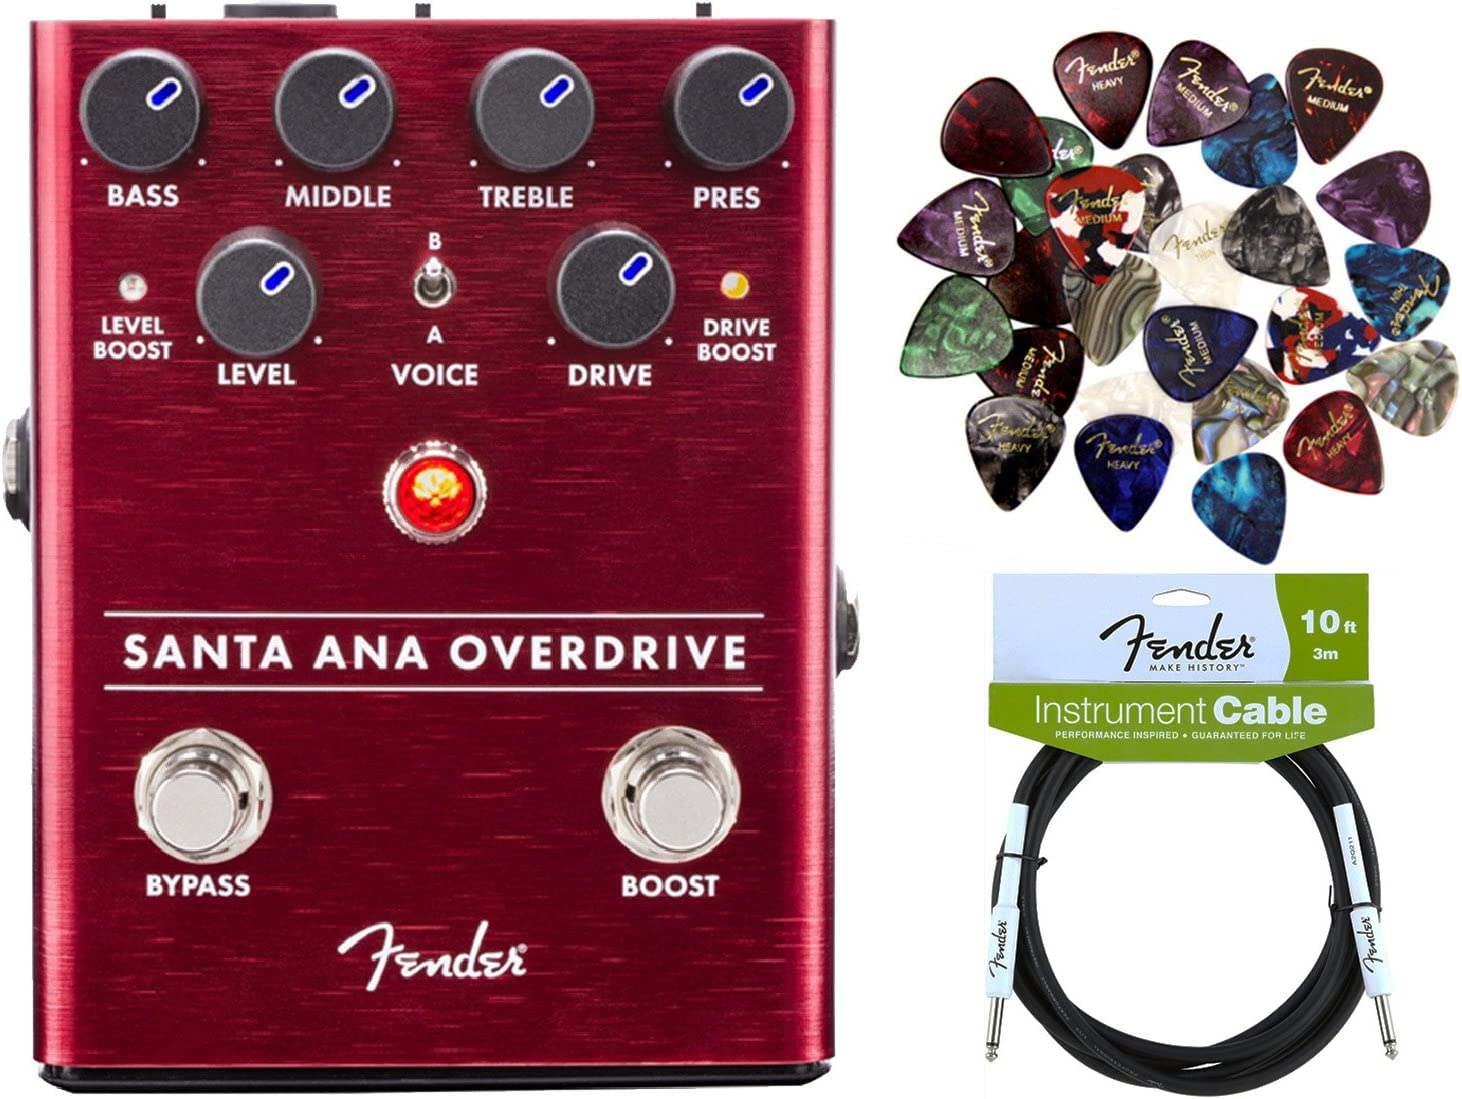 Fender Santa Ana Overdrive Pedal Bundle with Instrument Cable and 24 Picks